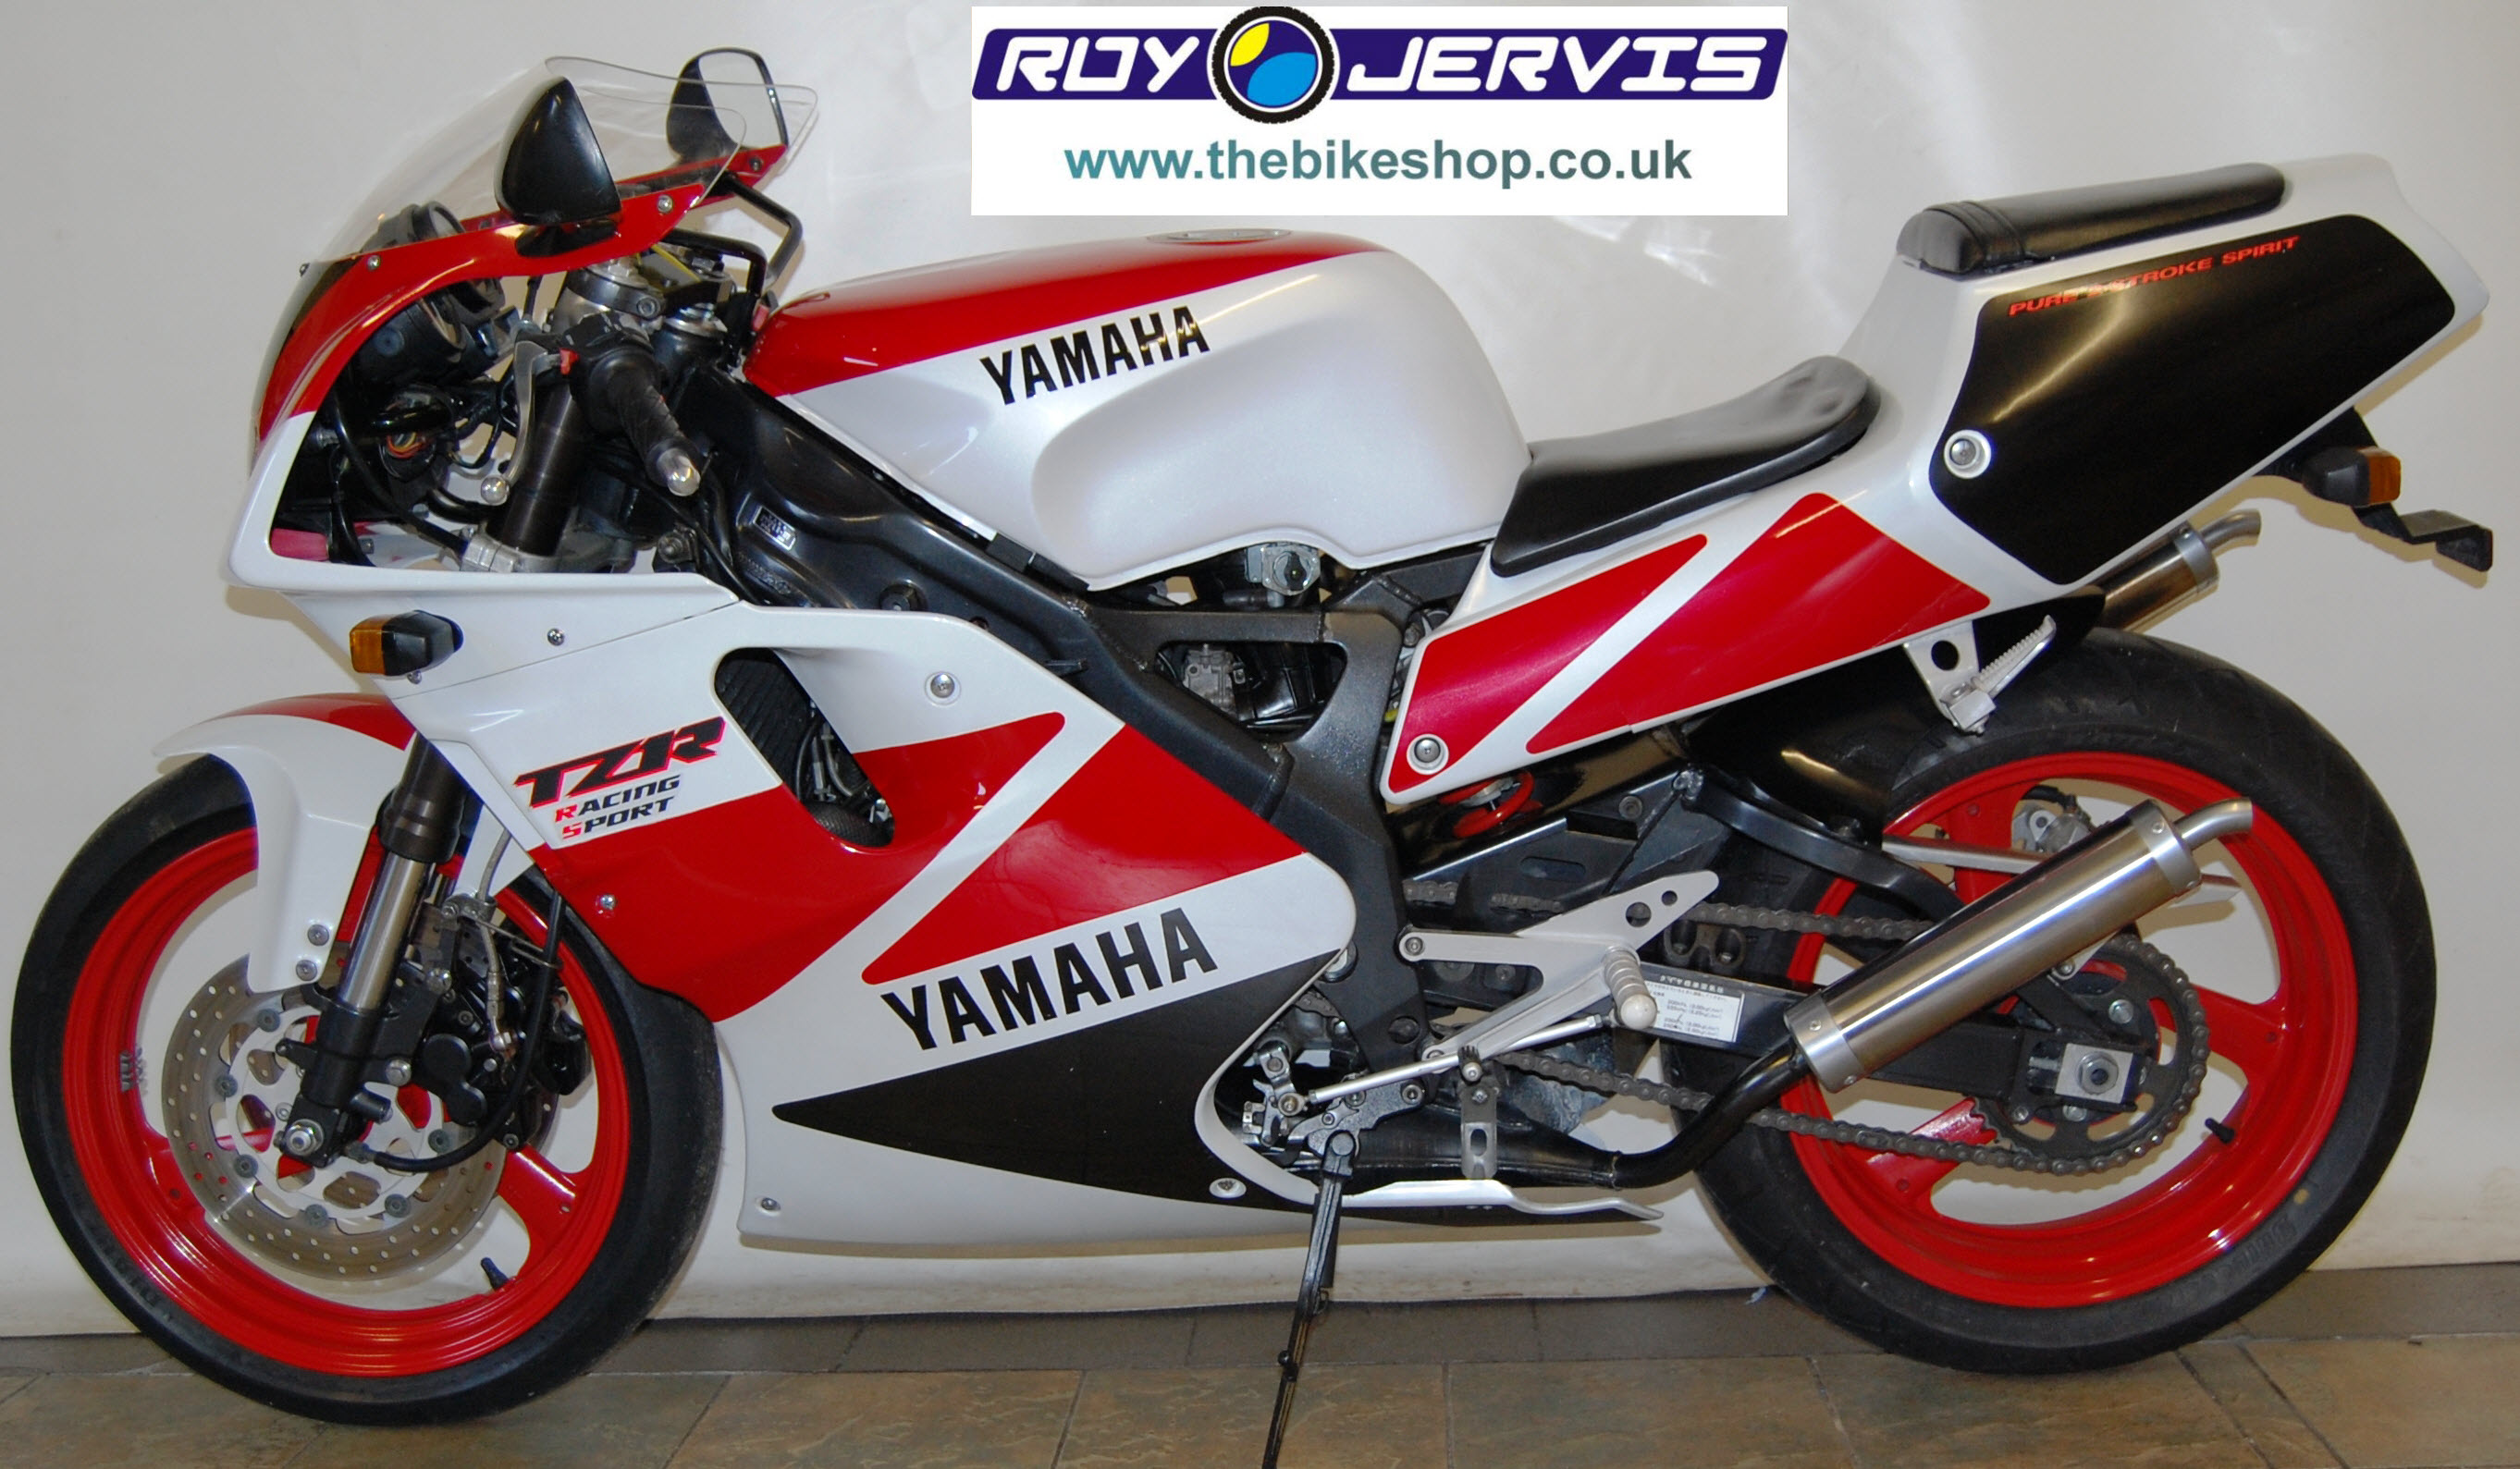 YAMAHA TZR 250 red